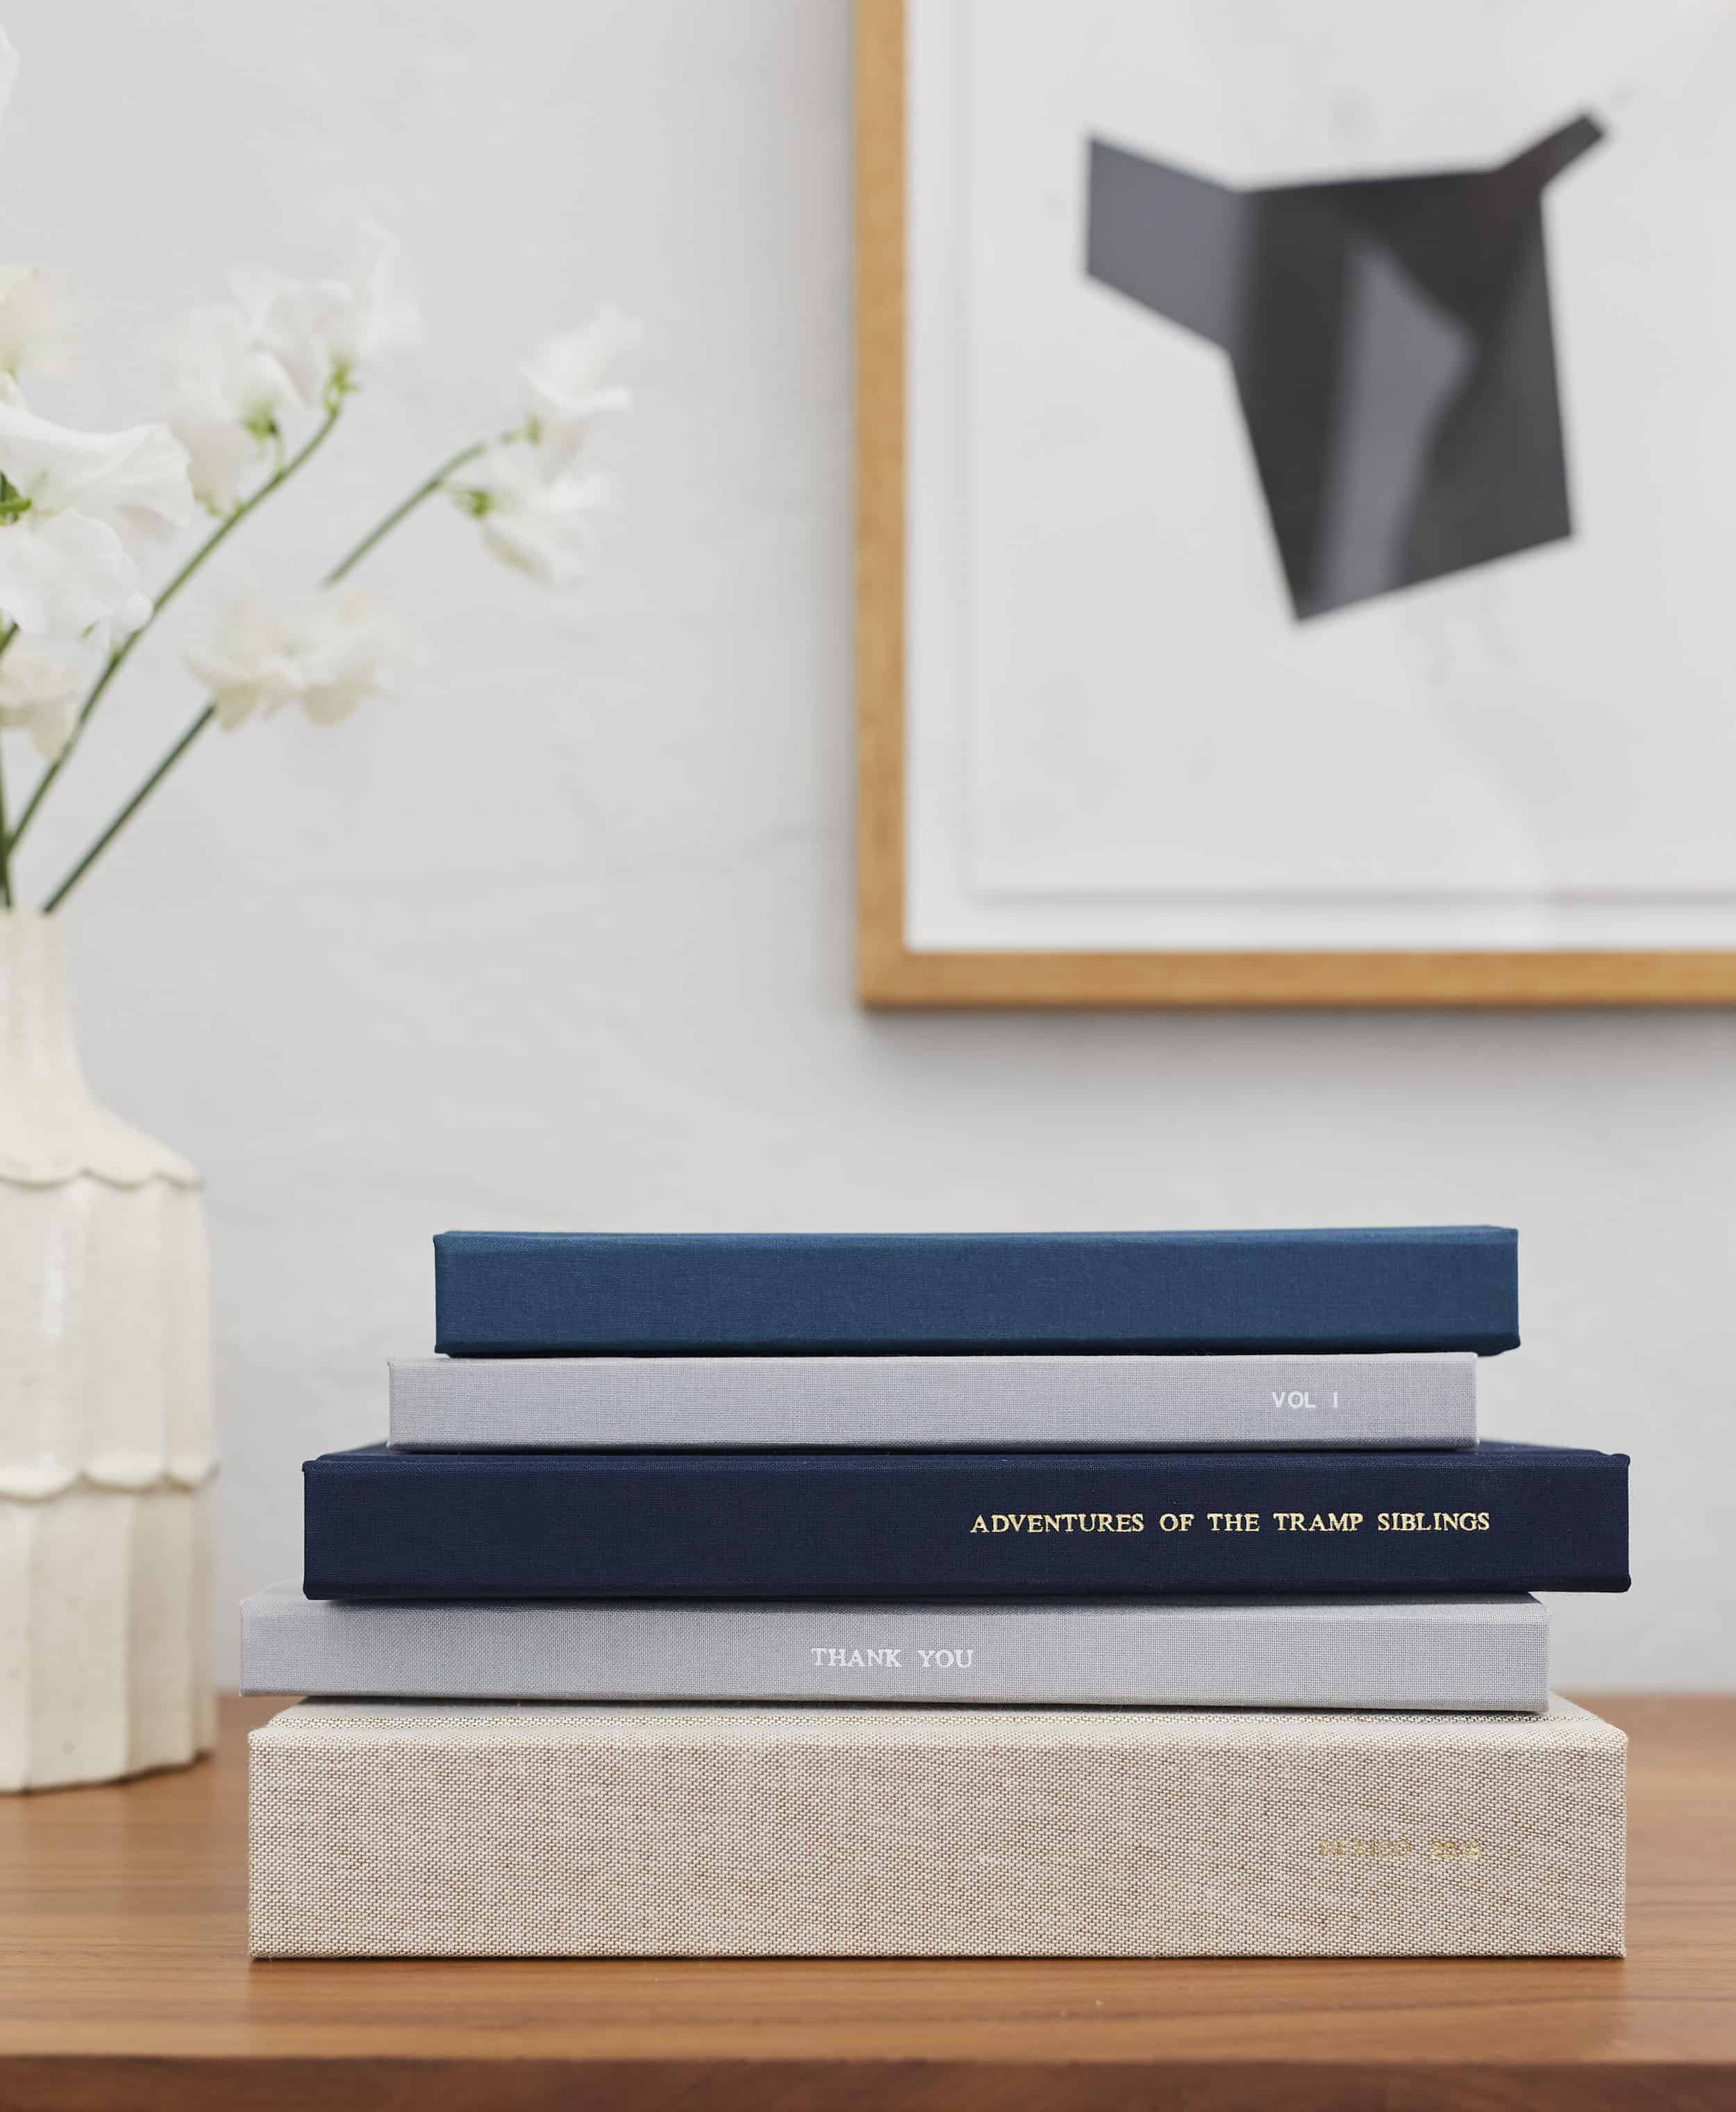 Artifact Uprise Beautiful Custom Photo Books Emobssed Spines